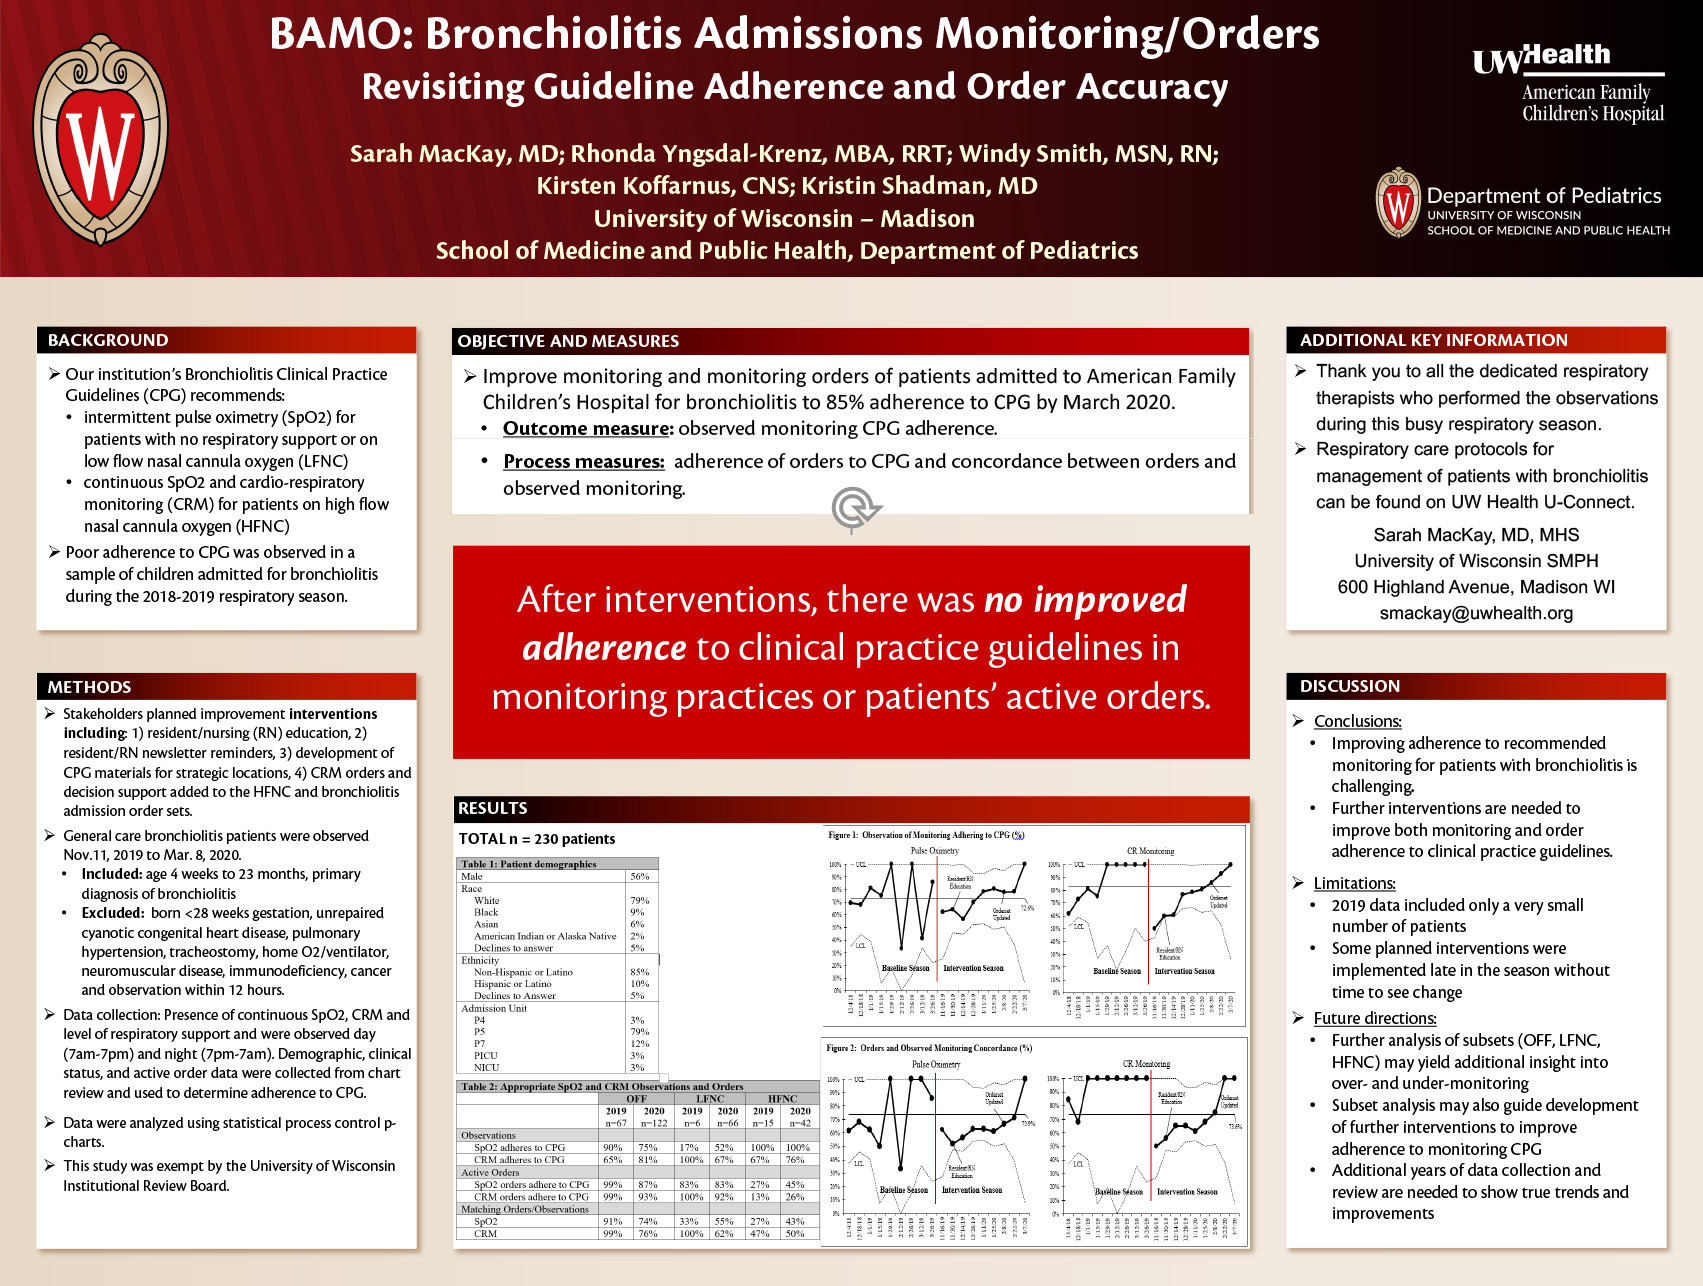 BAMO: Bronchiolitis Admissions Monitoring/Orders Revisiting Guideline Adherence and Order Accuracy poster image